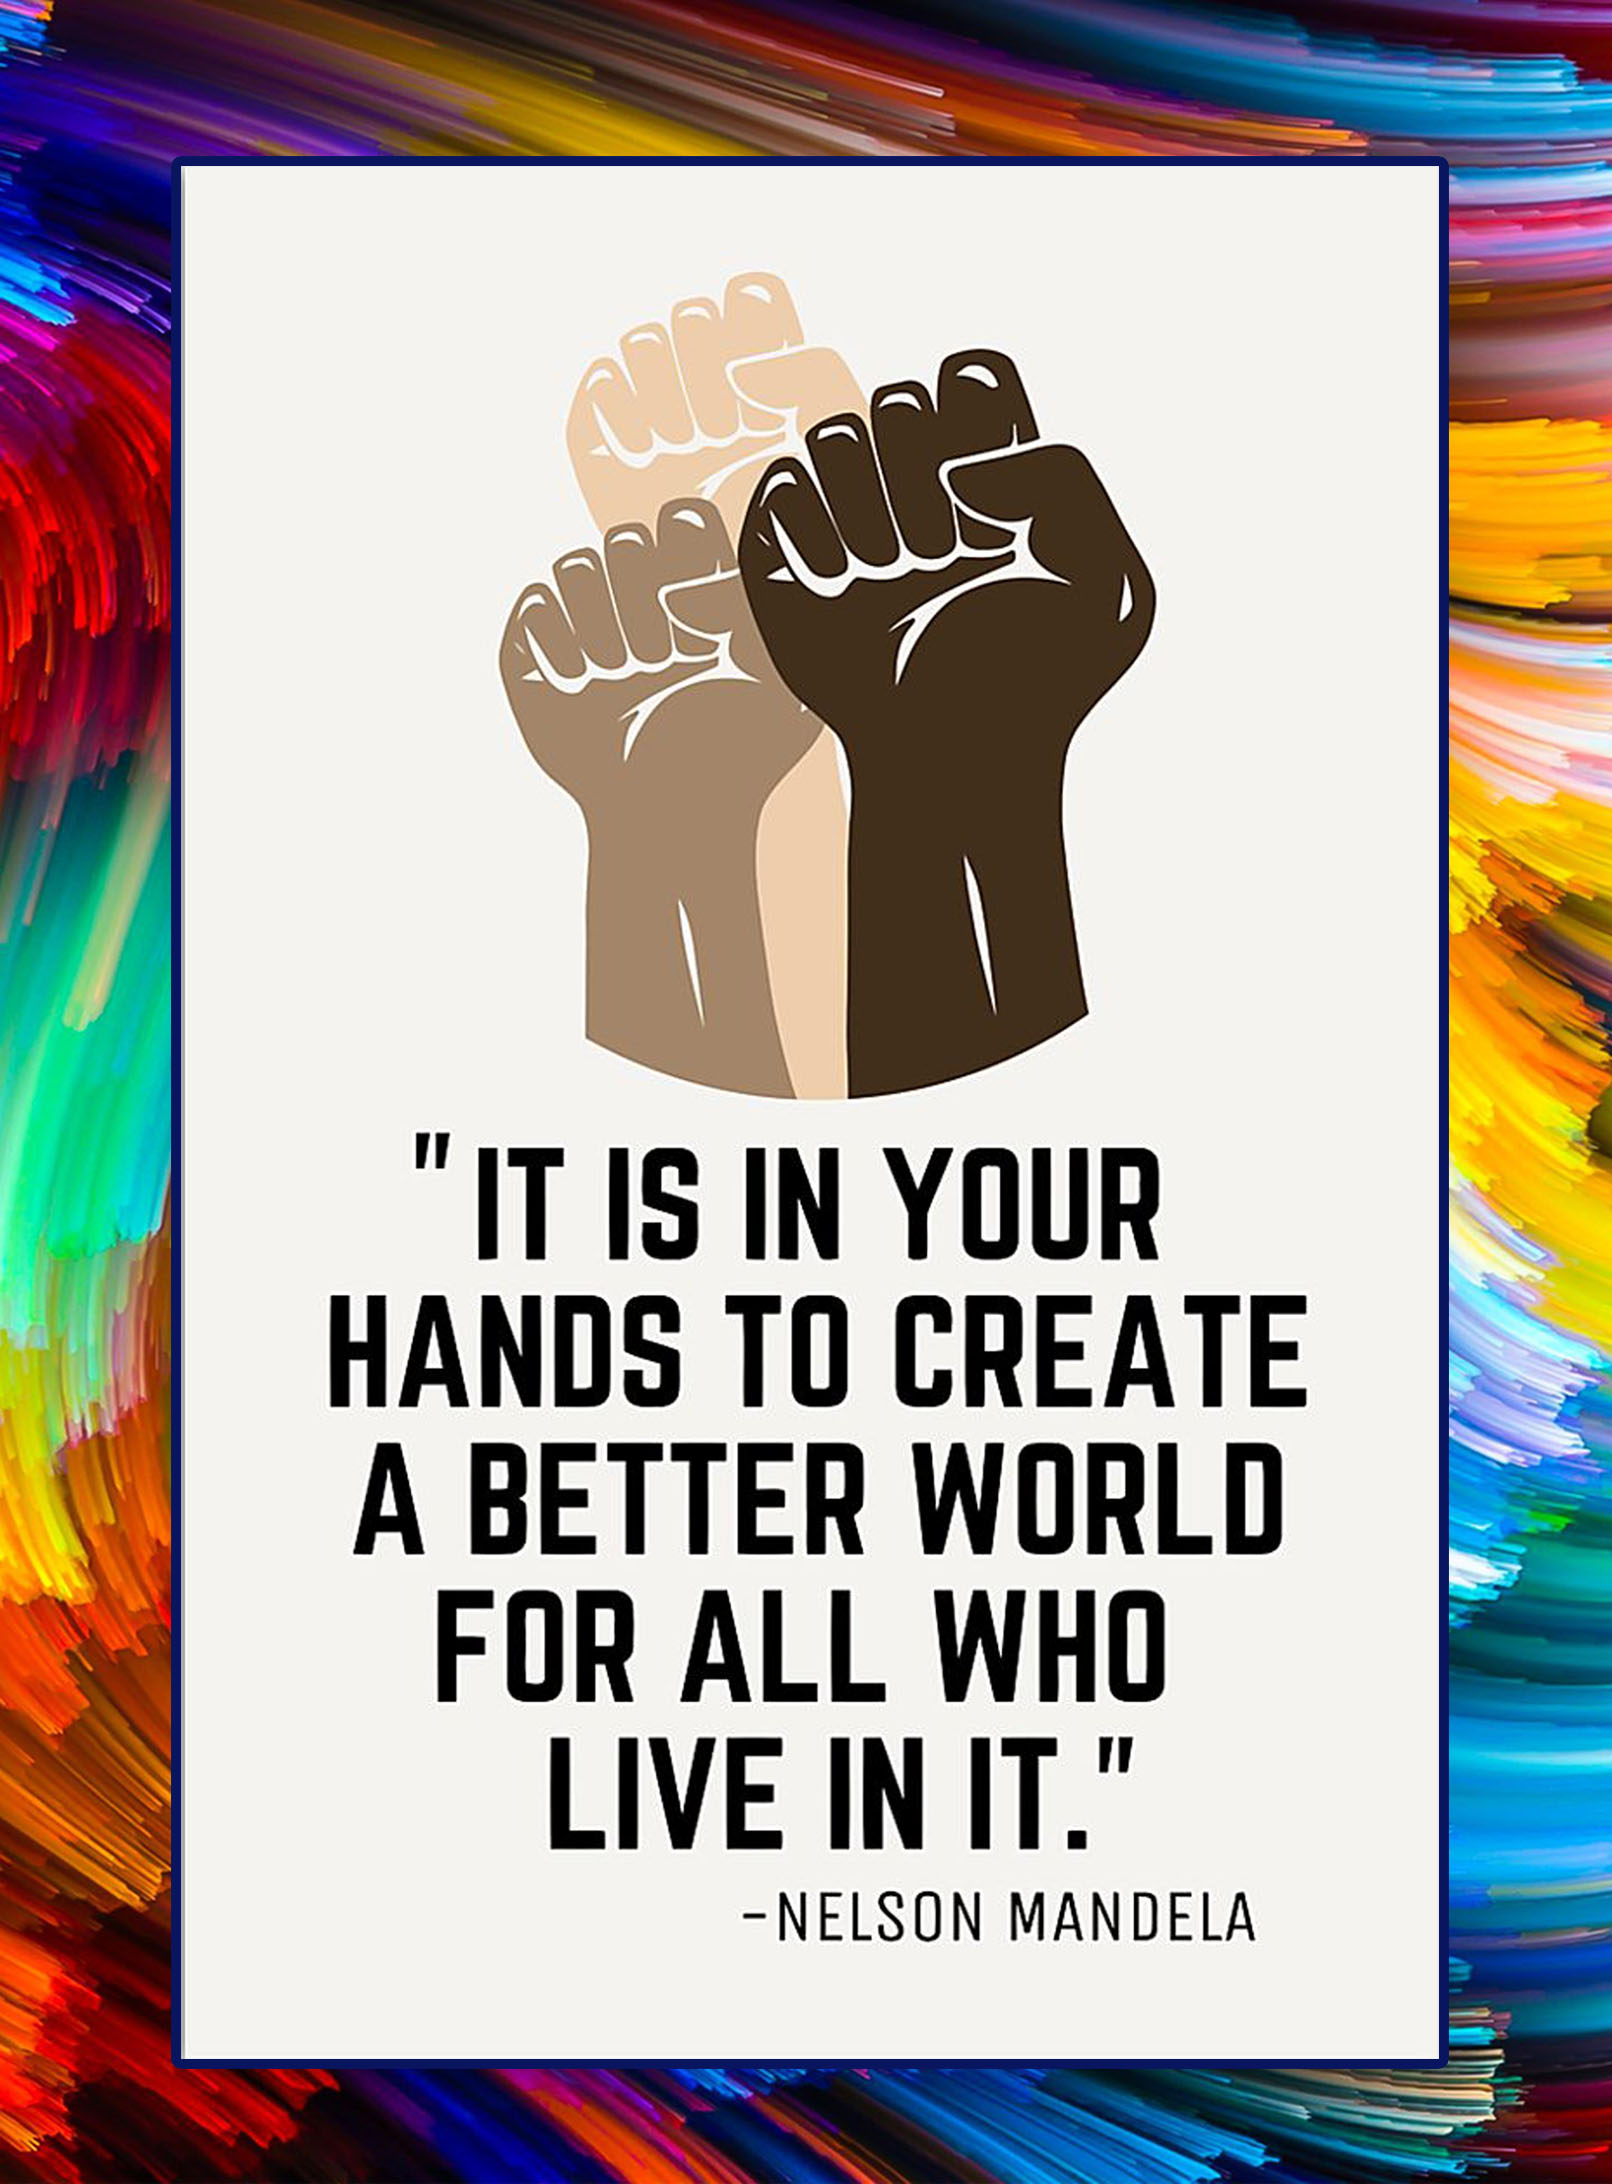 It is in your hands to create a better world for all who live in it nelson mandela poster - A4